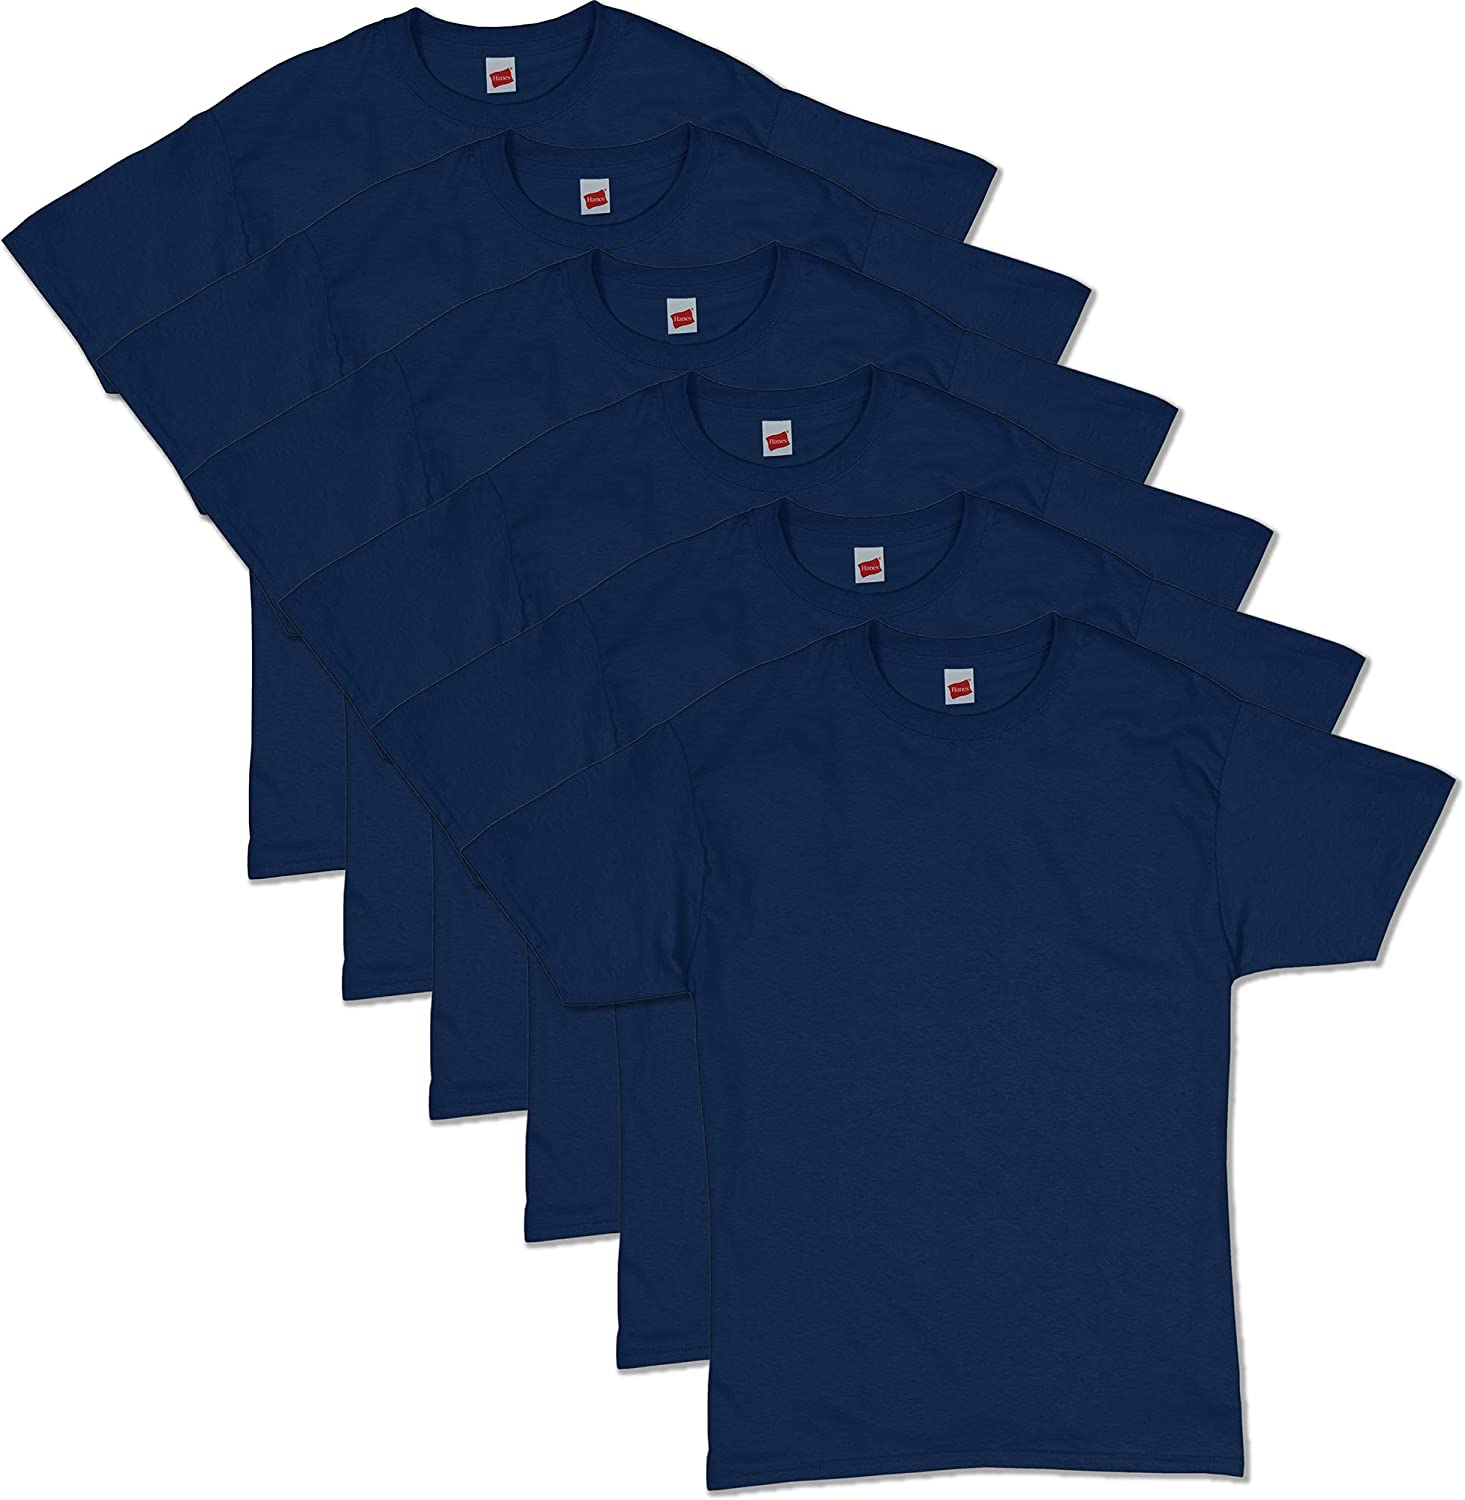 Hanes Men's Essentials Short Sleeve T-shirt Pack Value 3-pack New Popular shop is the lowest price challenge item